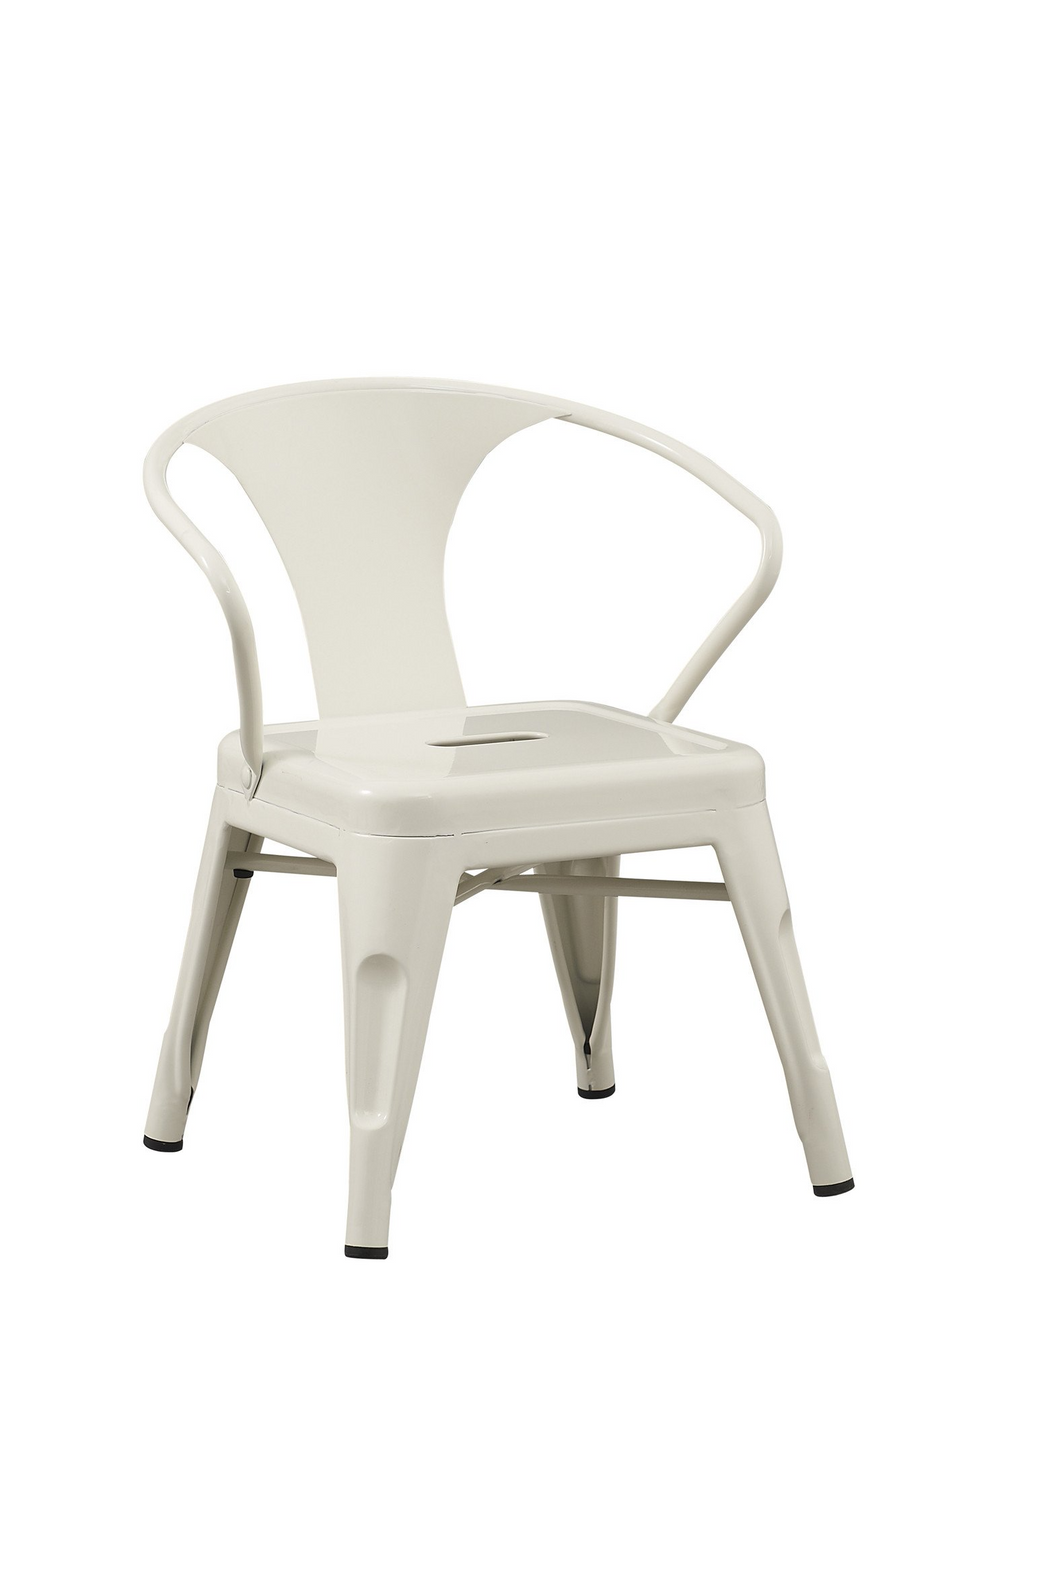 ... Rugged Steel Industrial White Kids Play Stackable Metal Chair (set of 2) ...  sc 1 st  BTExpert & Rugged Steel Industrial White Kids Play Stackable Metal Chair (set ...